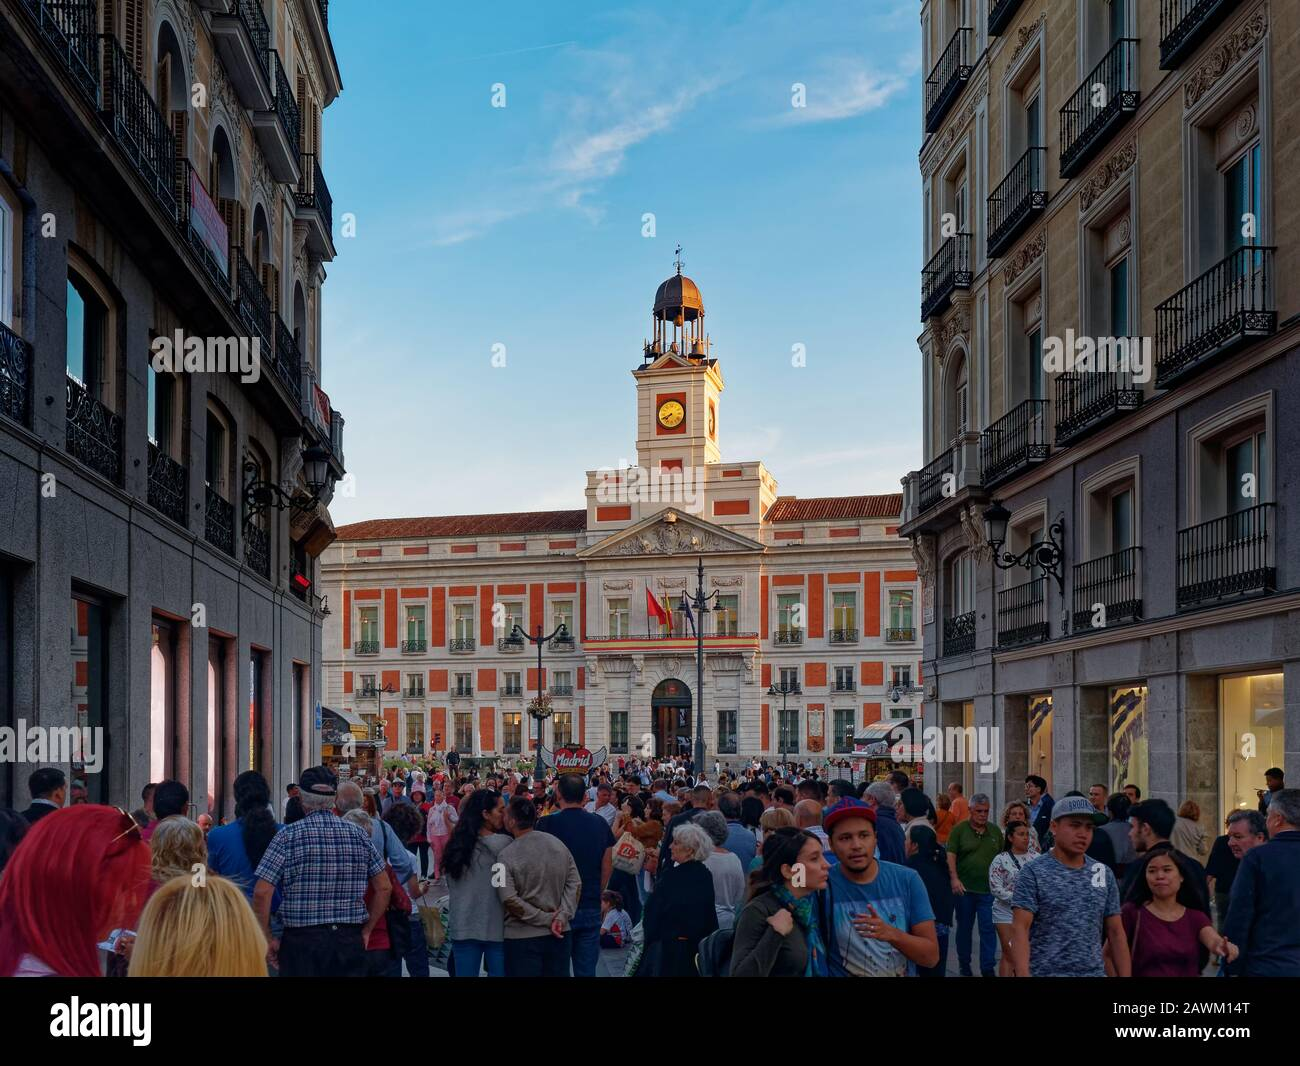 Madrid, Spain - Oct 2019: Crowd of people in Puerta del Sol (Gate Sun) square Stock Photo